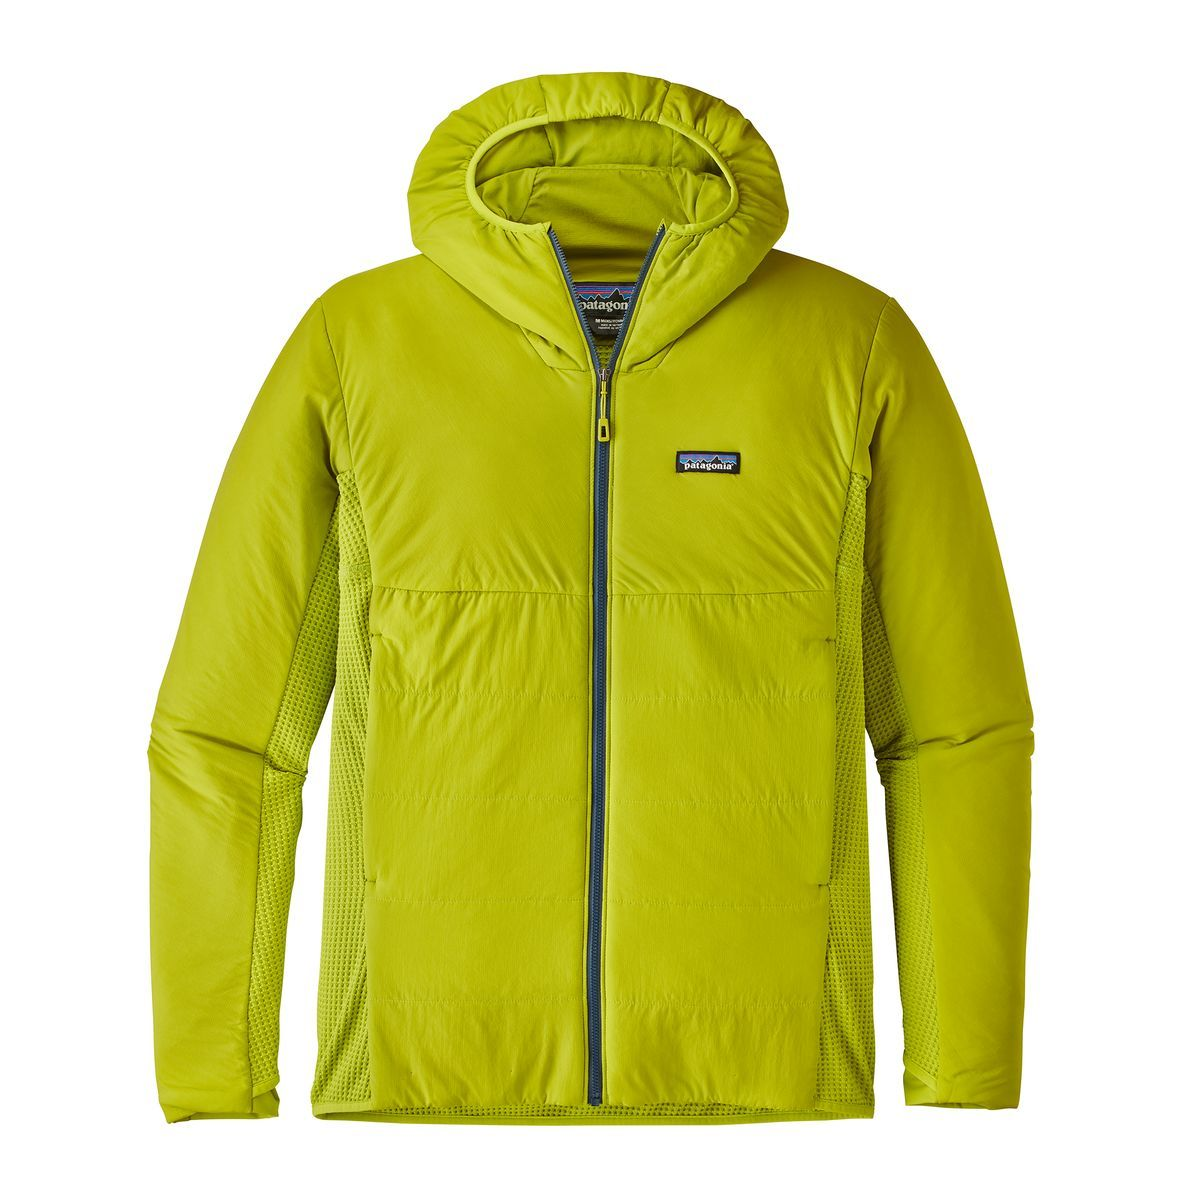 Men's NanoAir® Light Hybrid Hoody Outdoor outfit